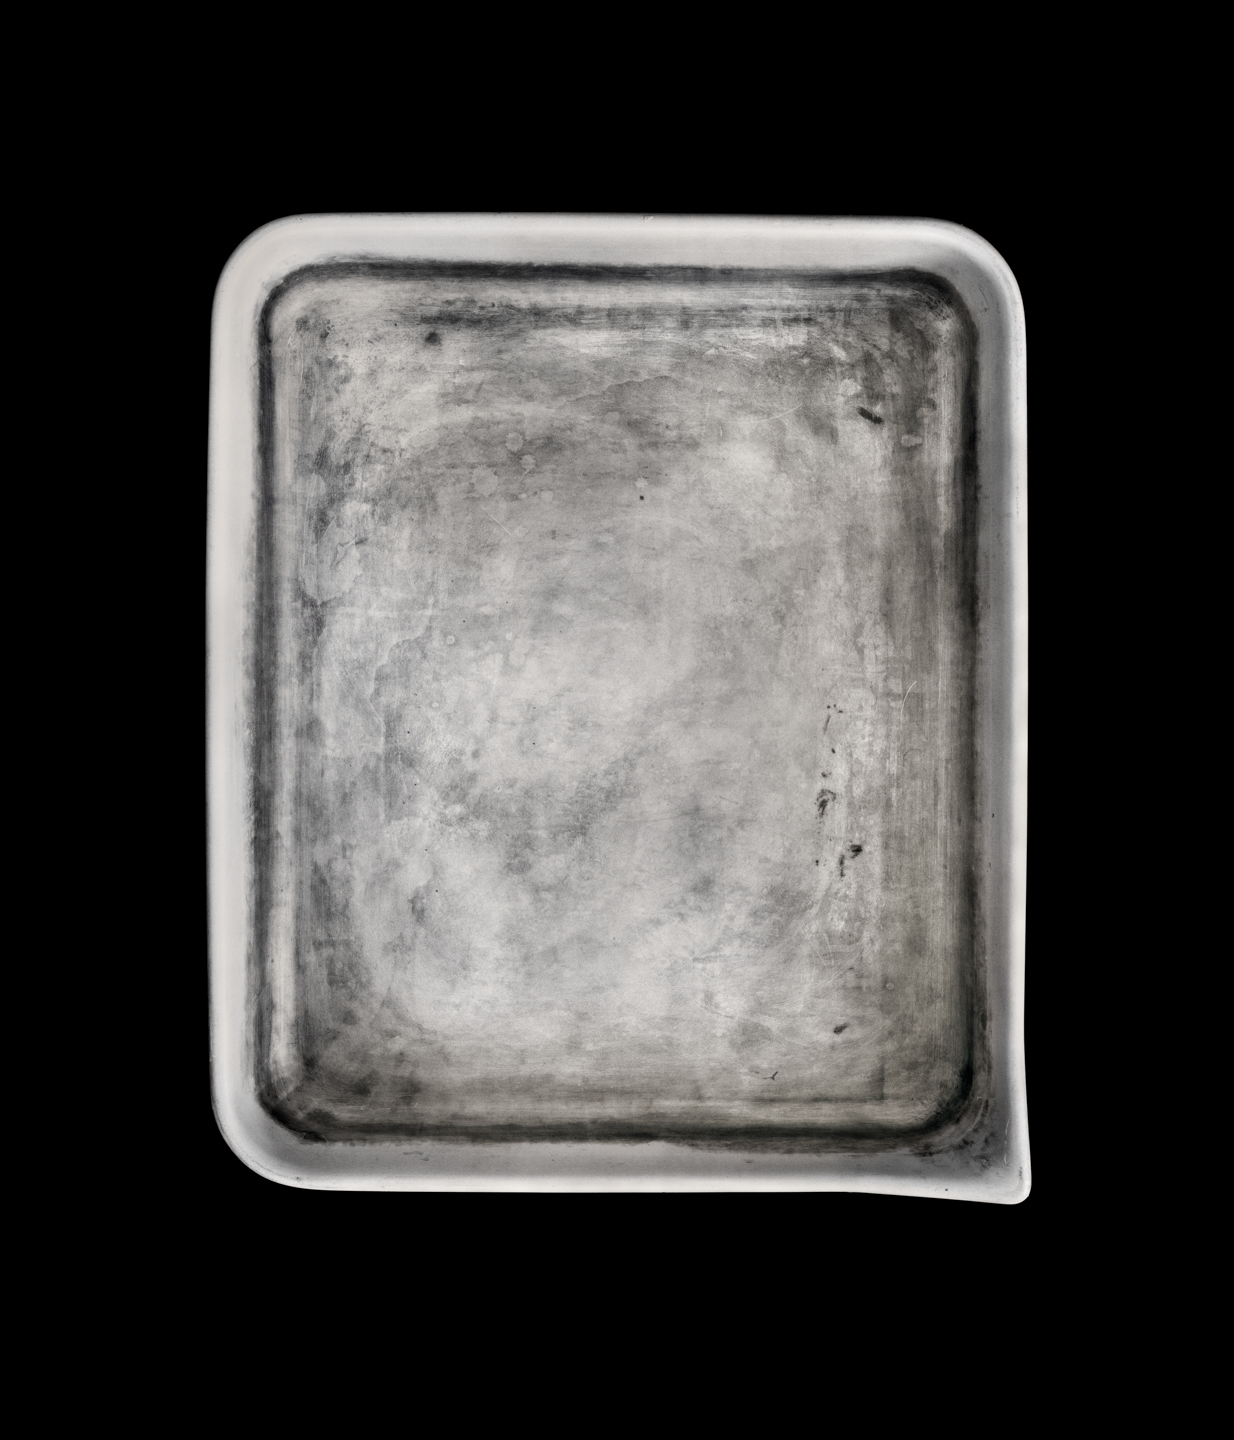 Ralph Gibson's Developer Tray, 2010